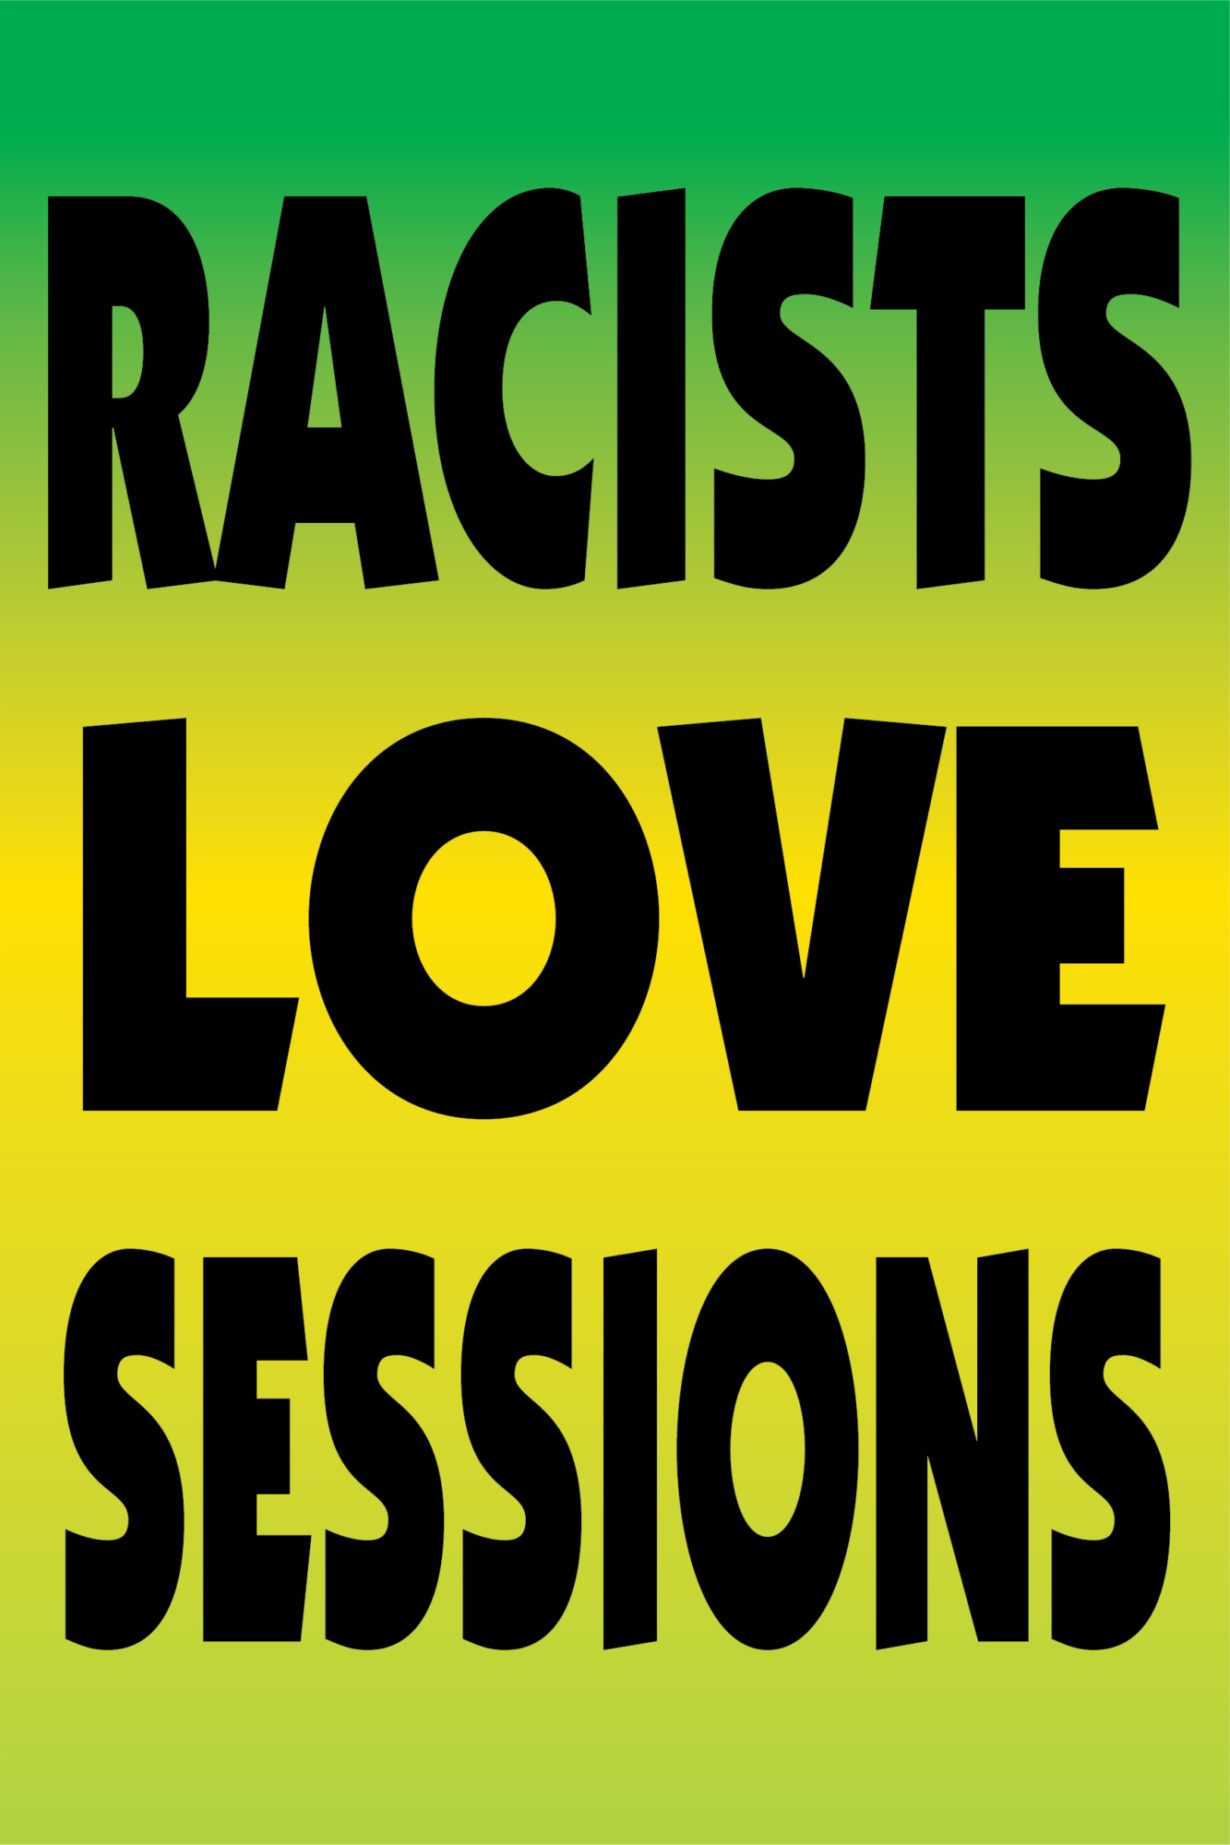 NP_51_75_2017_Racists-Love-Sessions.jpg